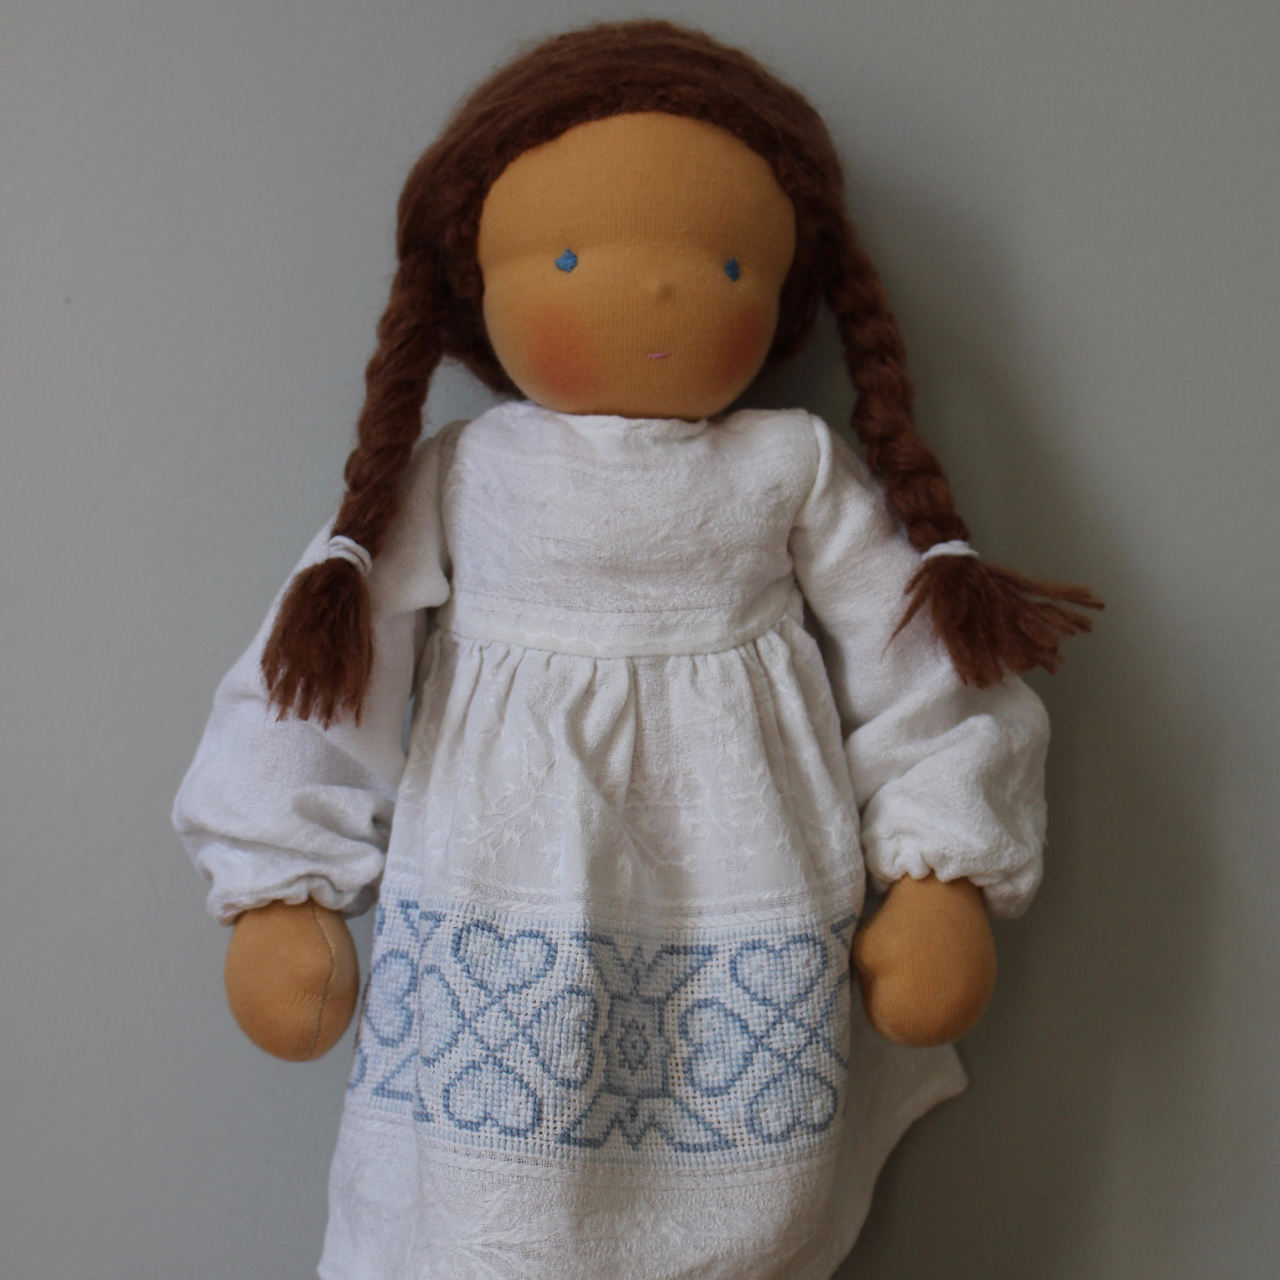 Waldorf doll girl in white embroidered dress, brown hair, made by feinslieb